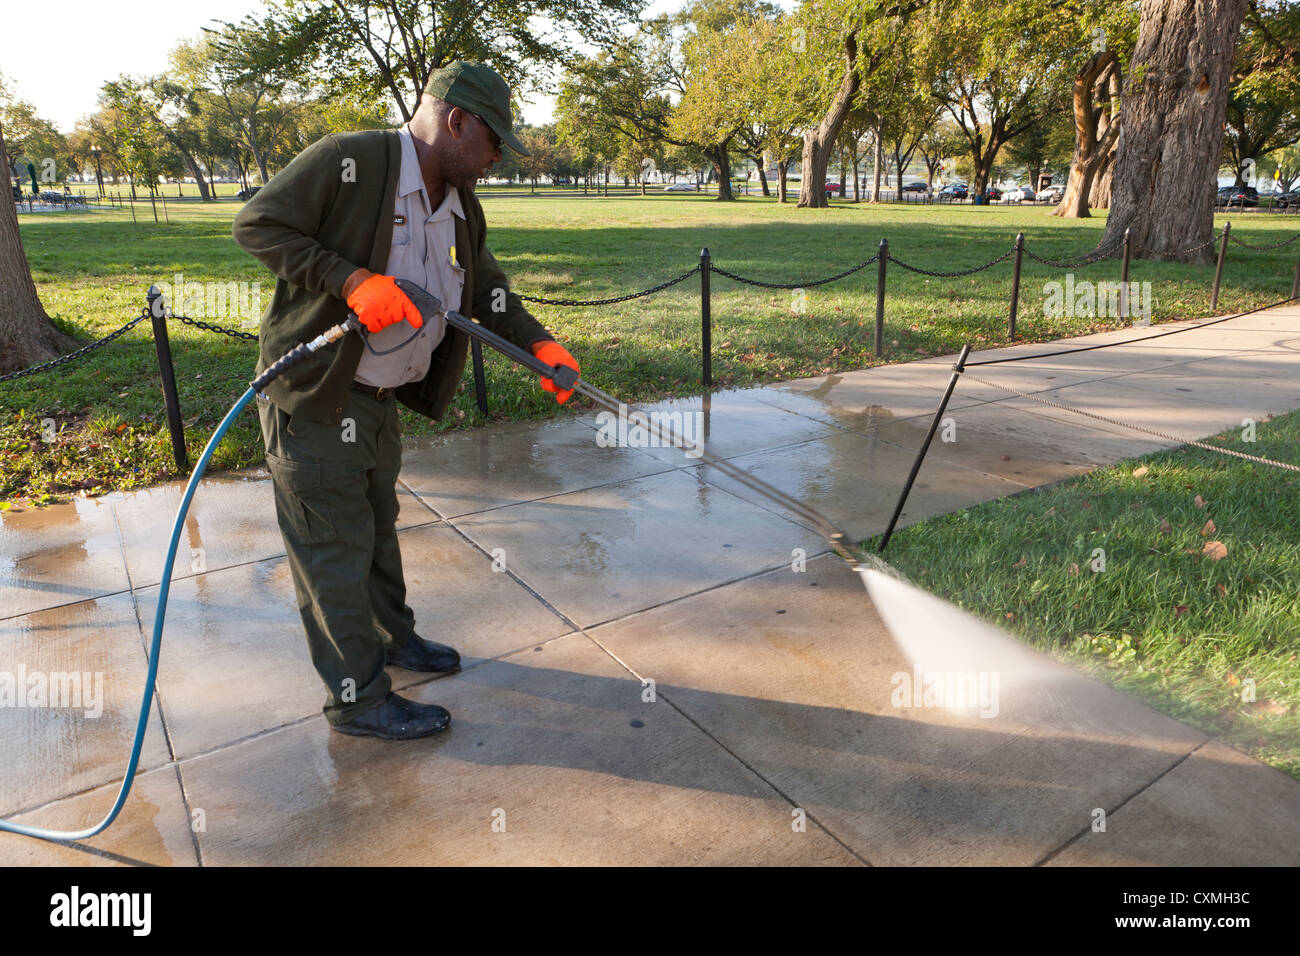 Employé Municipal lavage sous pression trottoir - Washington, DC USA Photo Stock